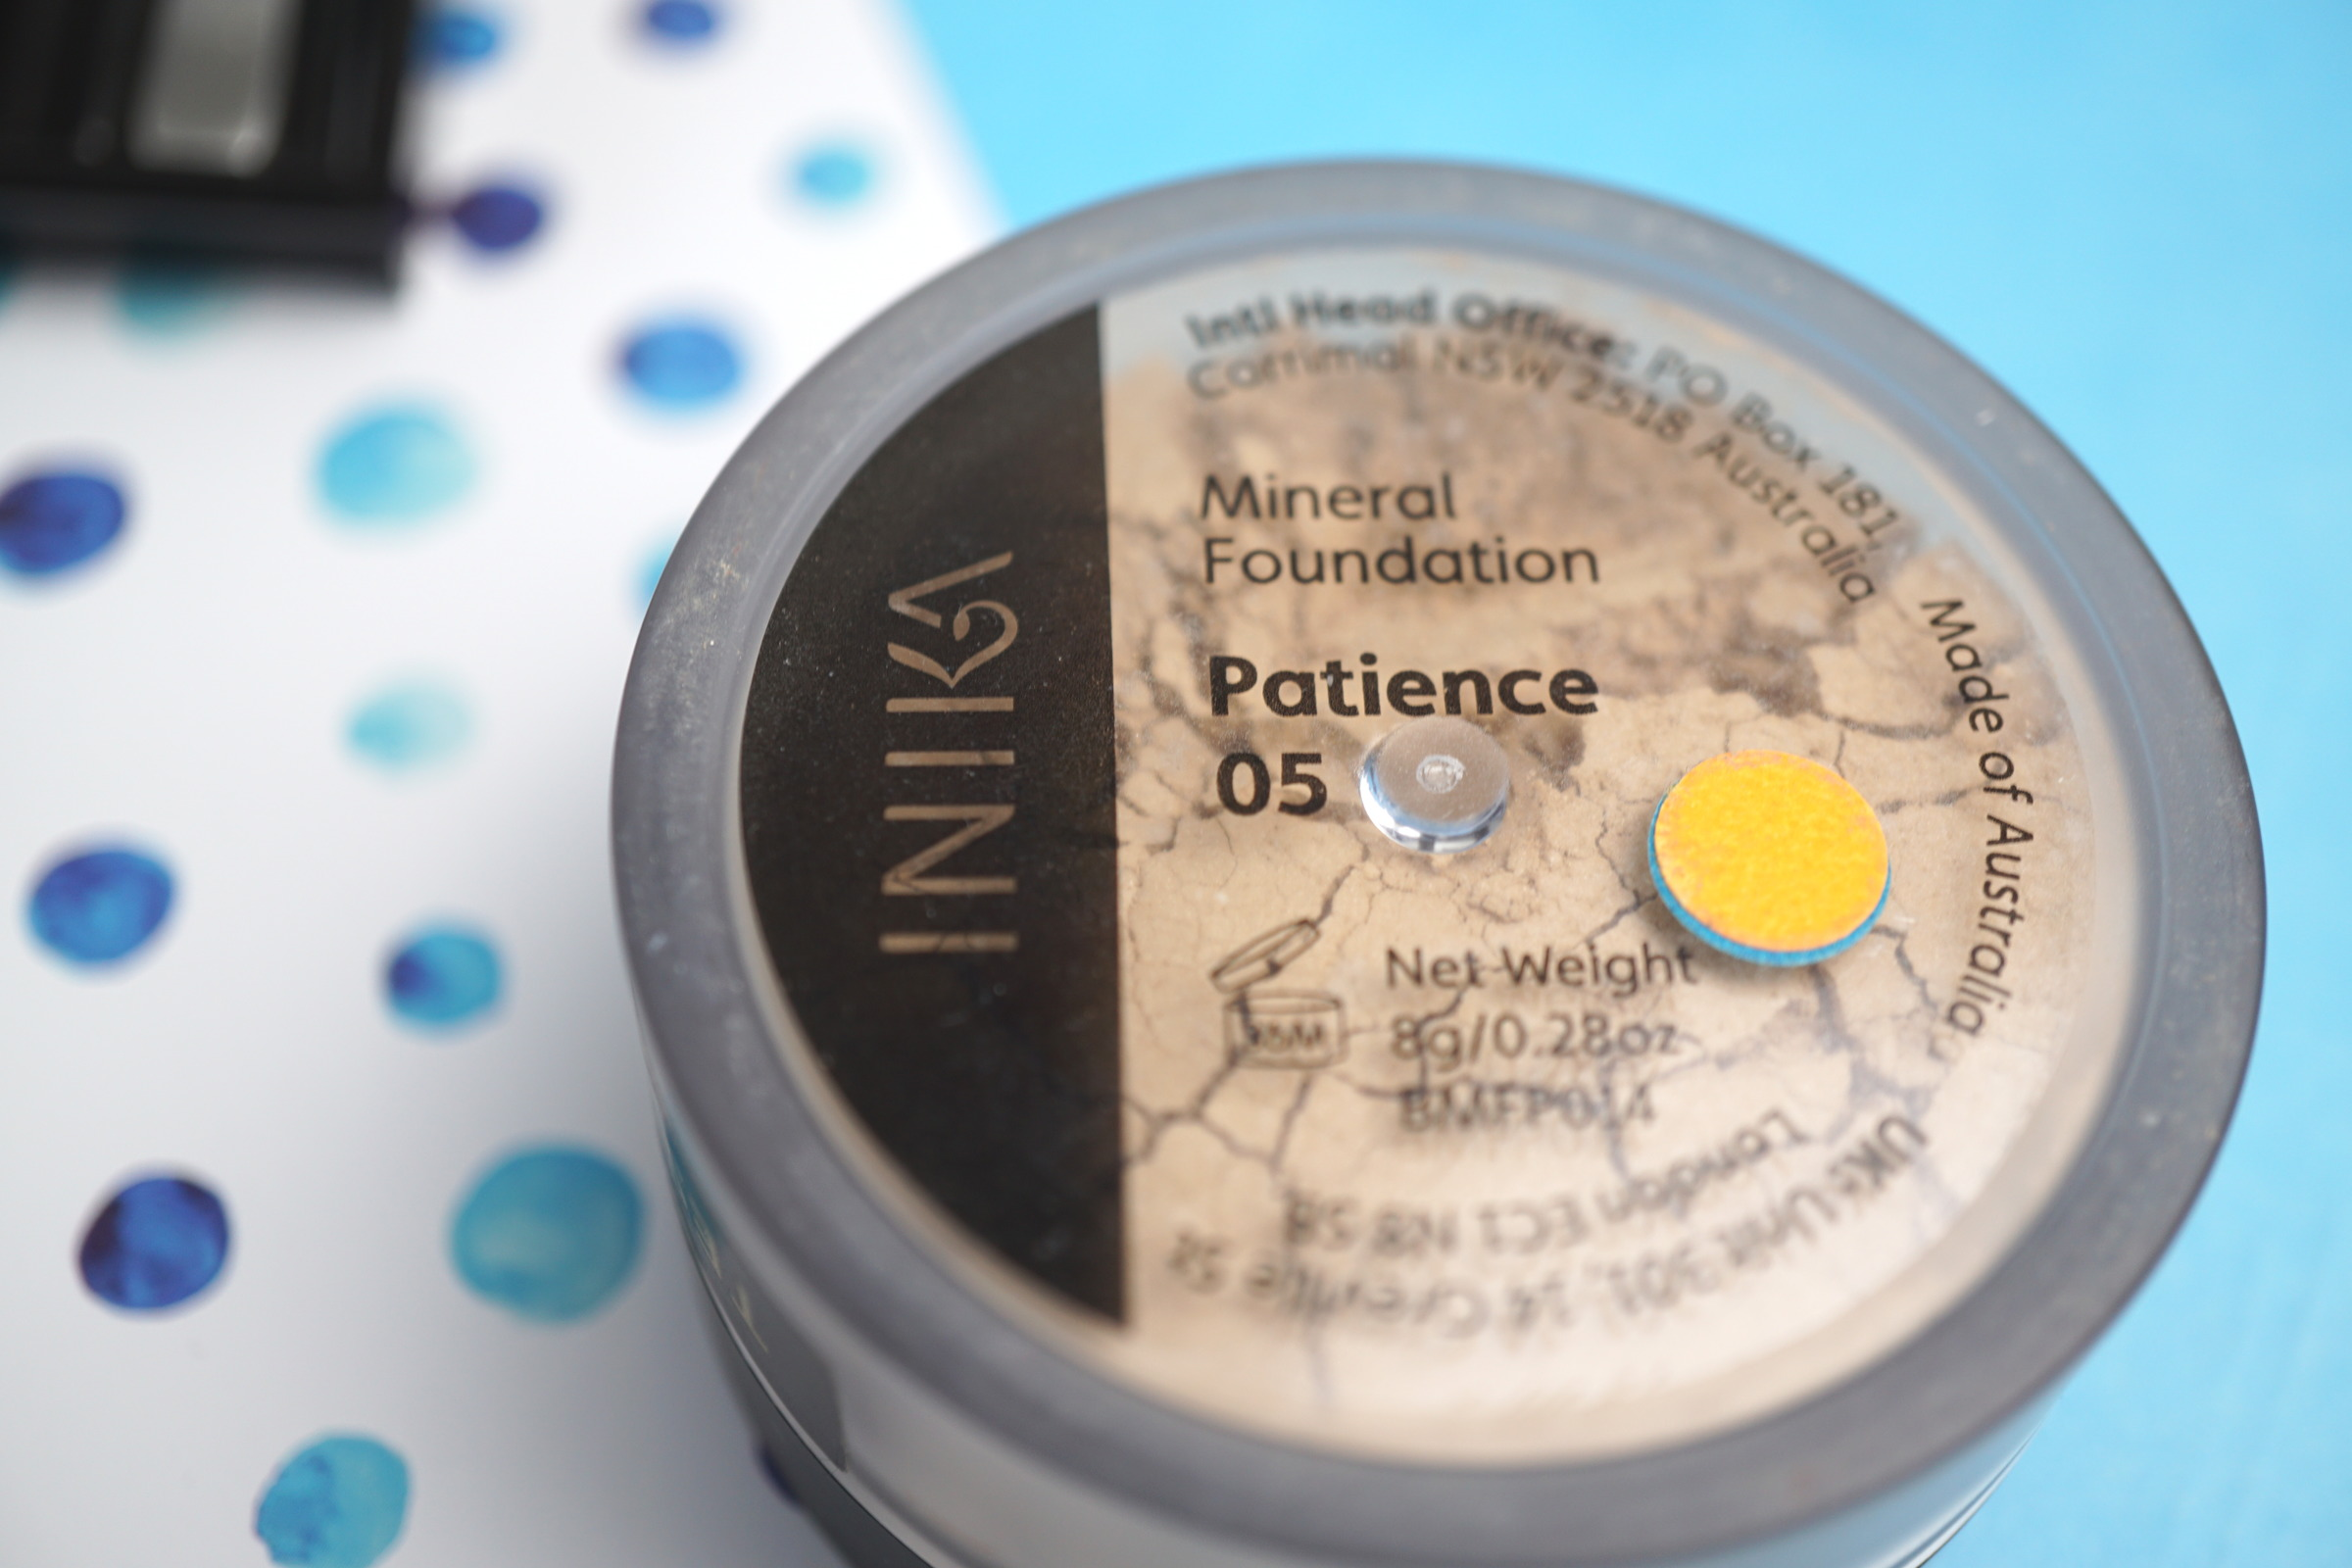 Inika Mineral Foundation 05 Patience